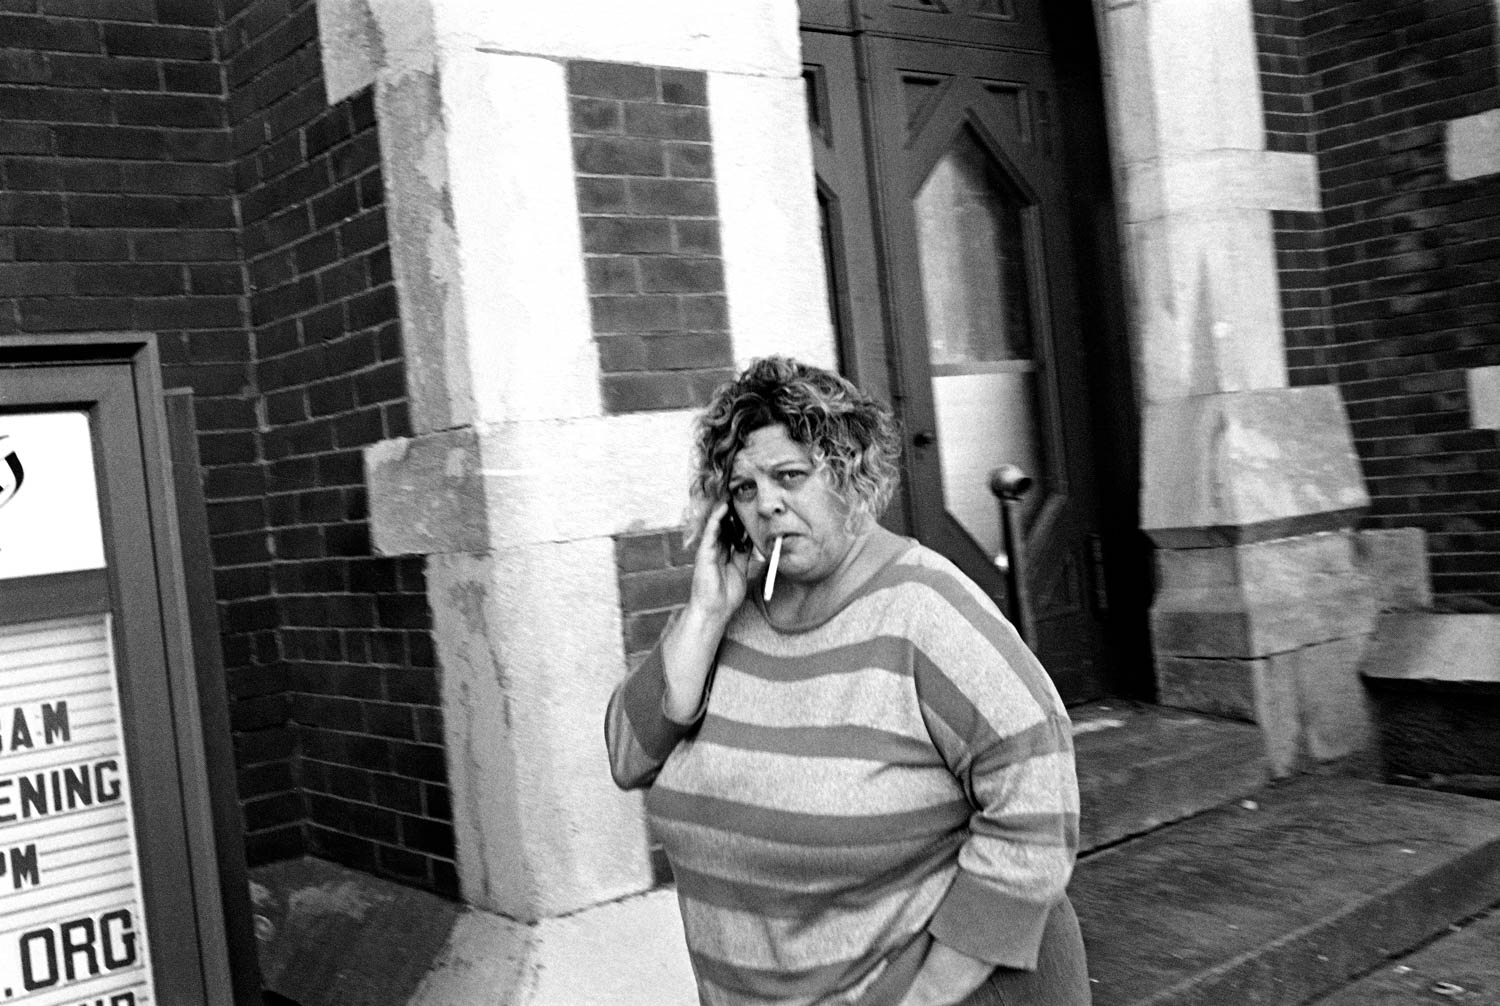 A black and white street photography of a woman talking on her cell phone and smoking on the streets of Binghamton, NY.